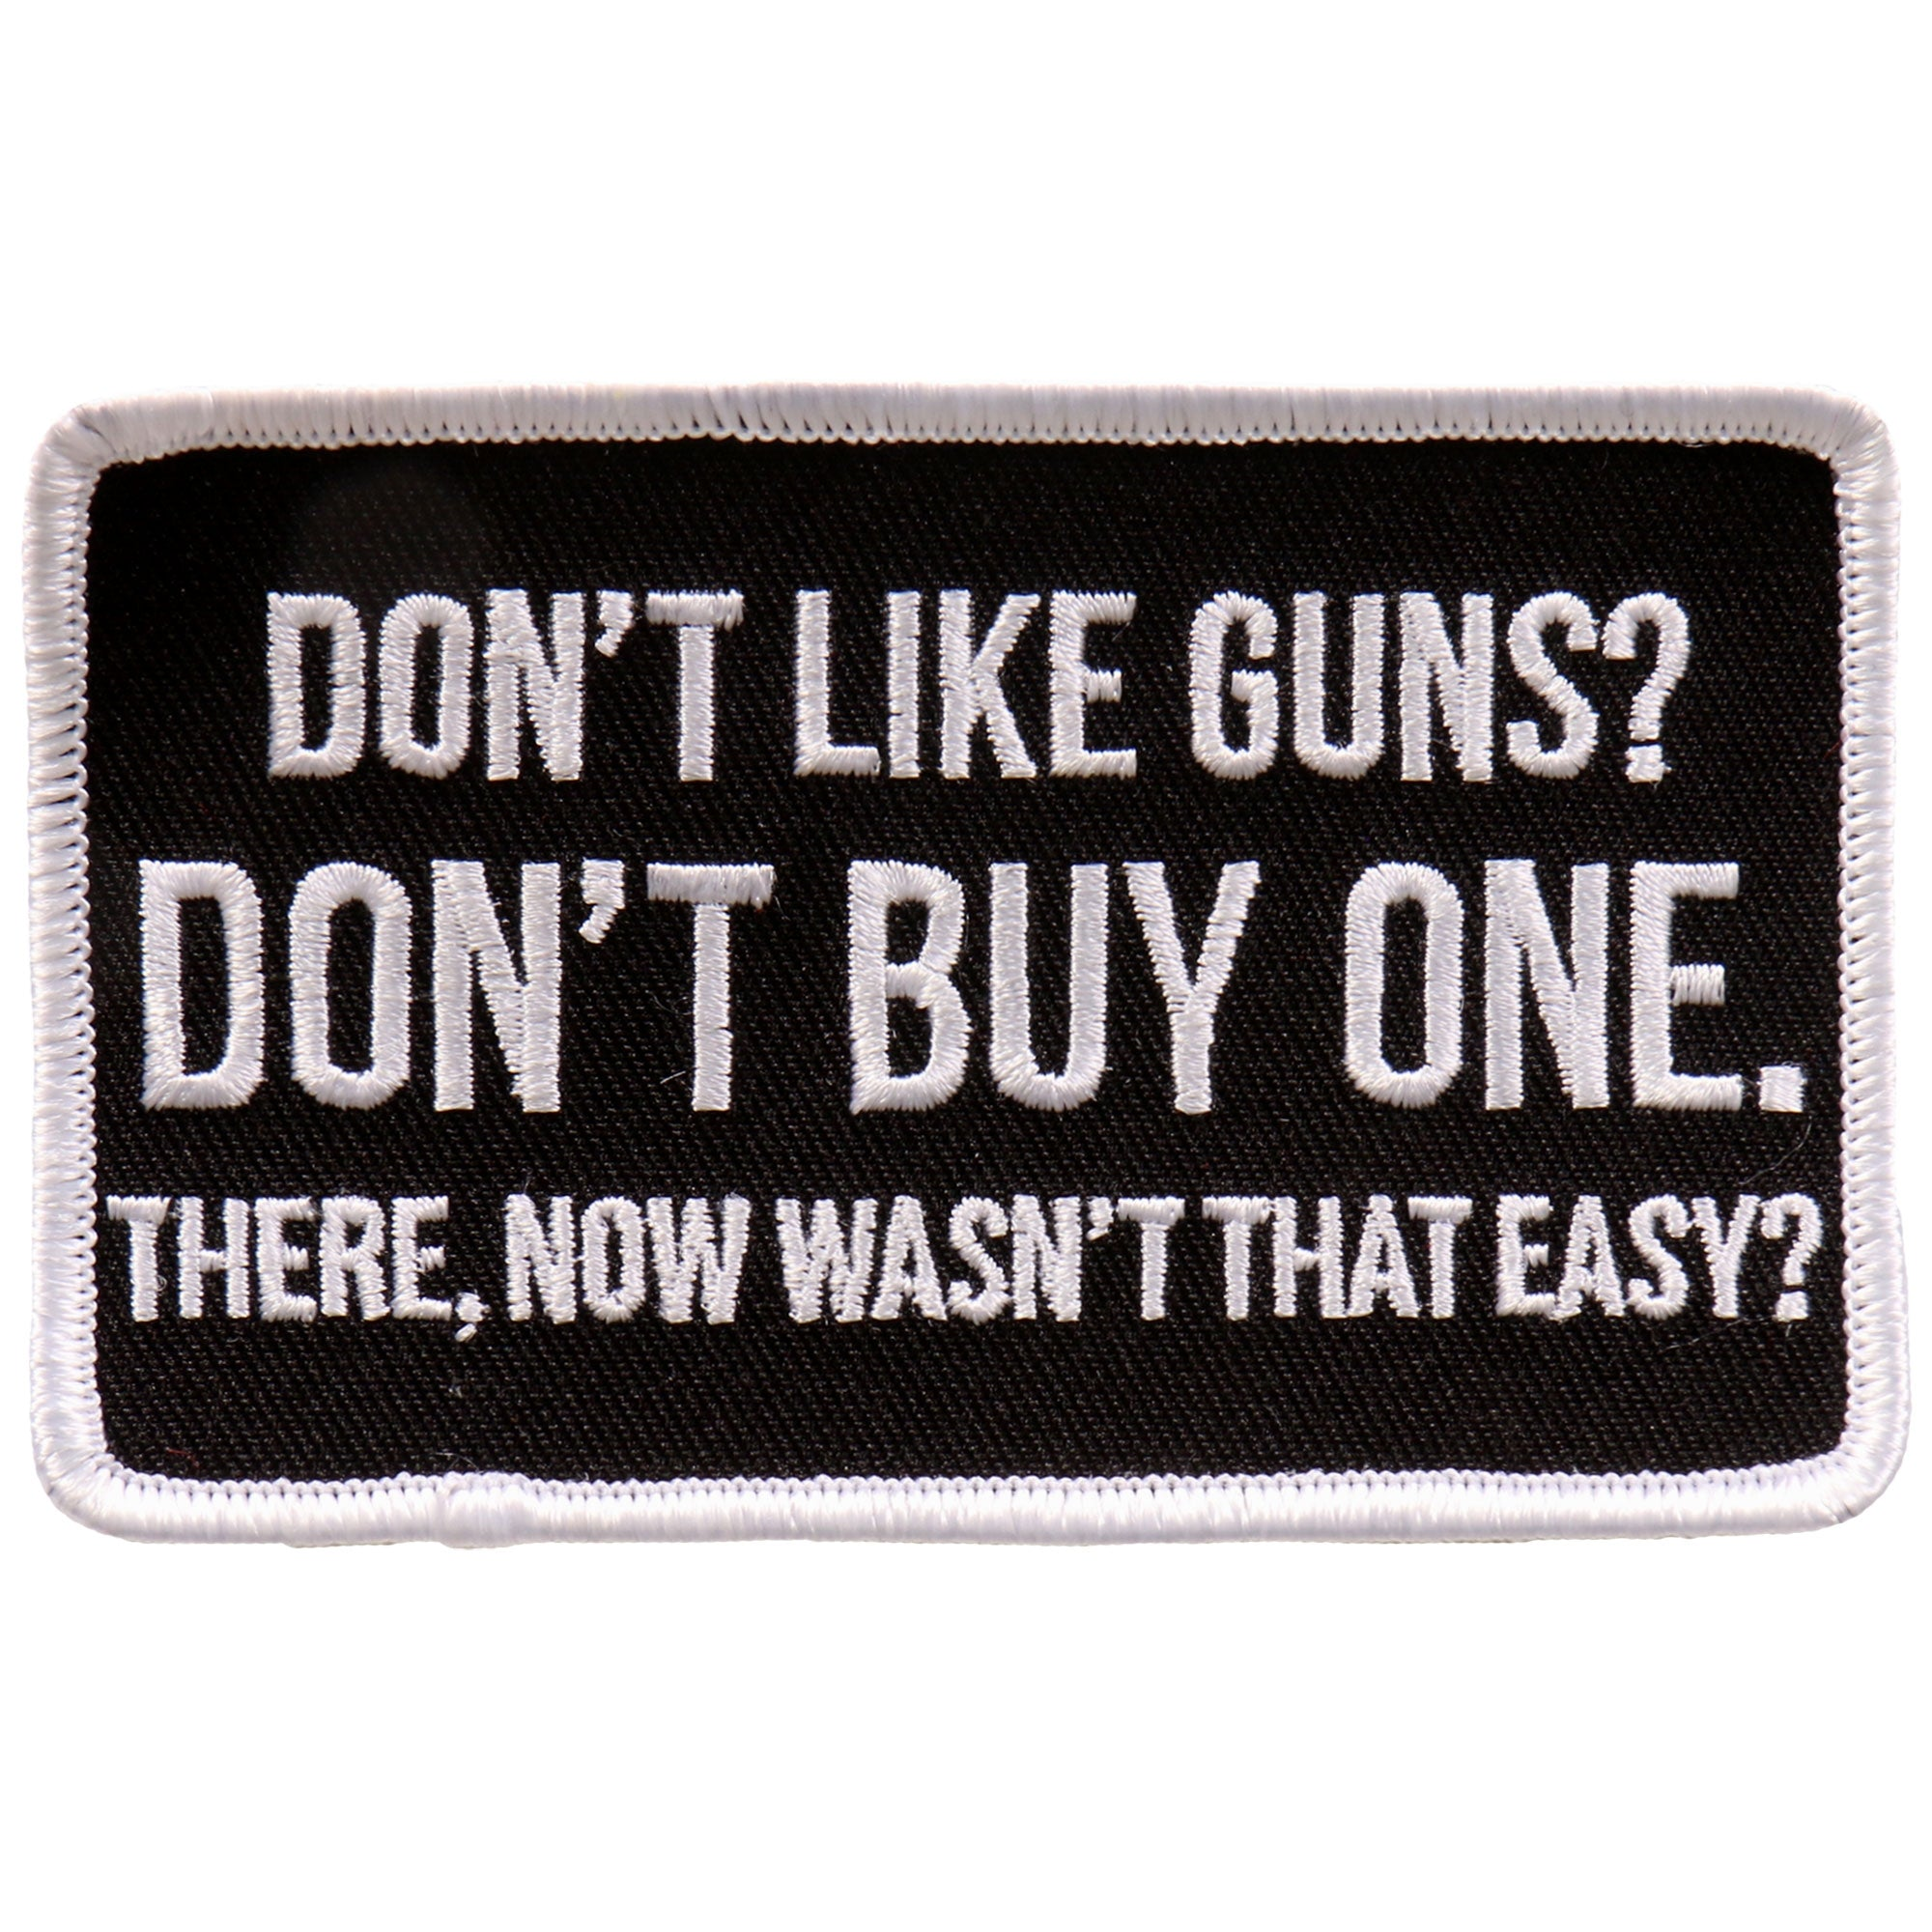 "Hot Leathers Don't Like Guns? 4""x3"" Patch"